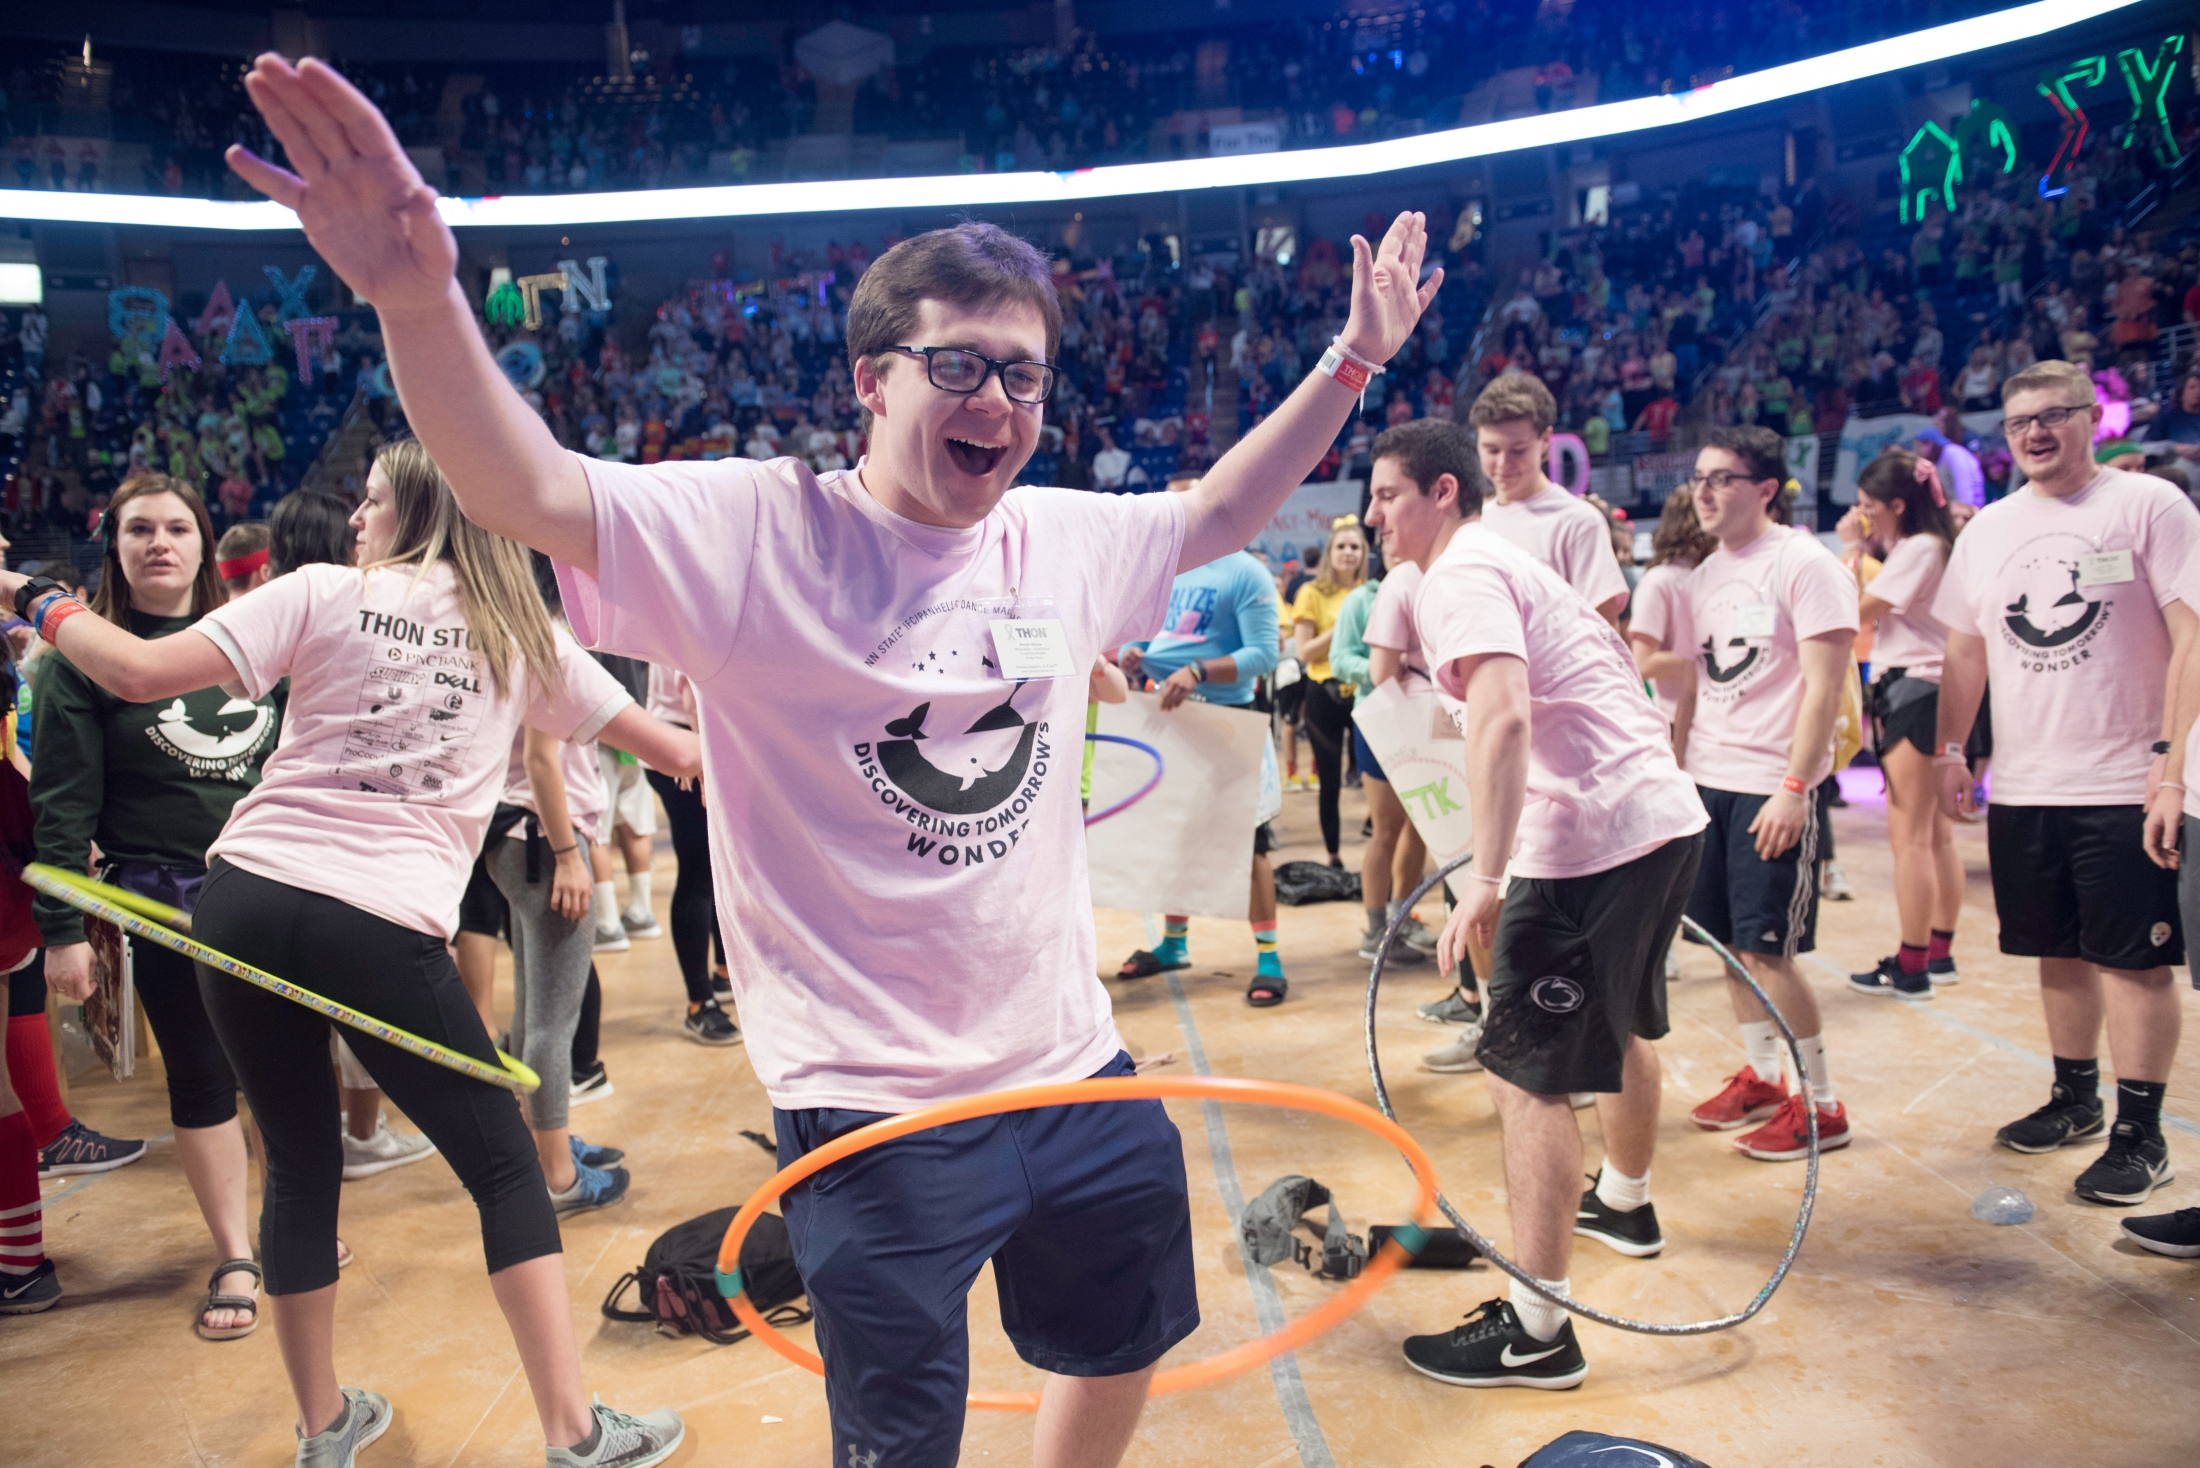 A student turns the hula hoop at Thon night at Penn State University, Saturday, on Feb 18, 2018.